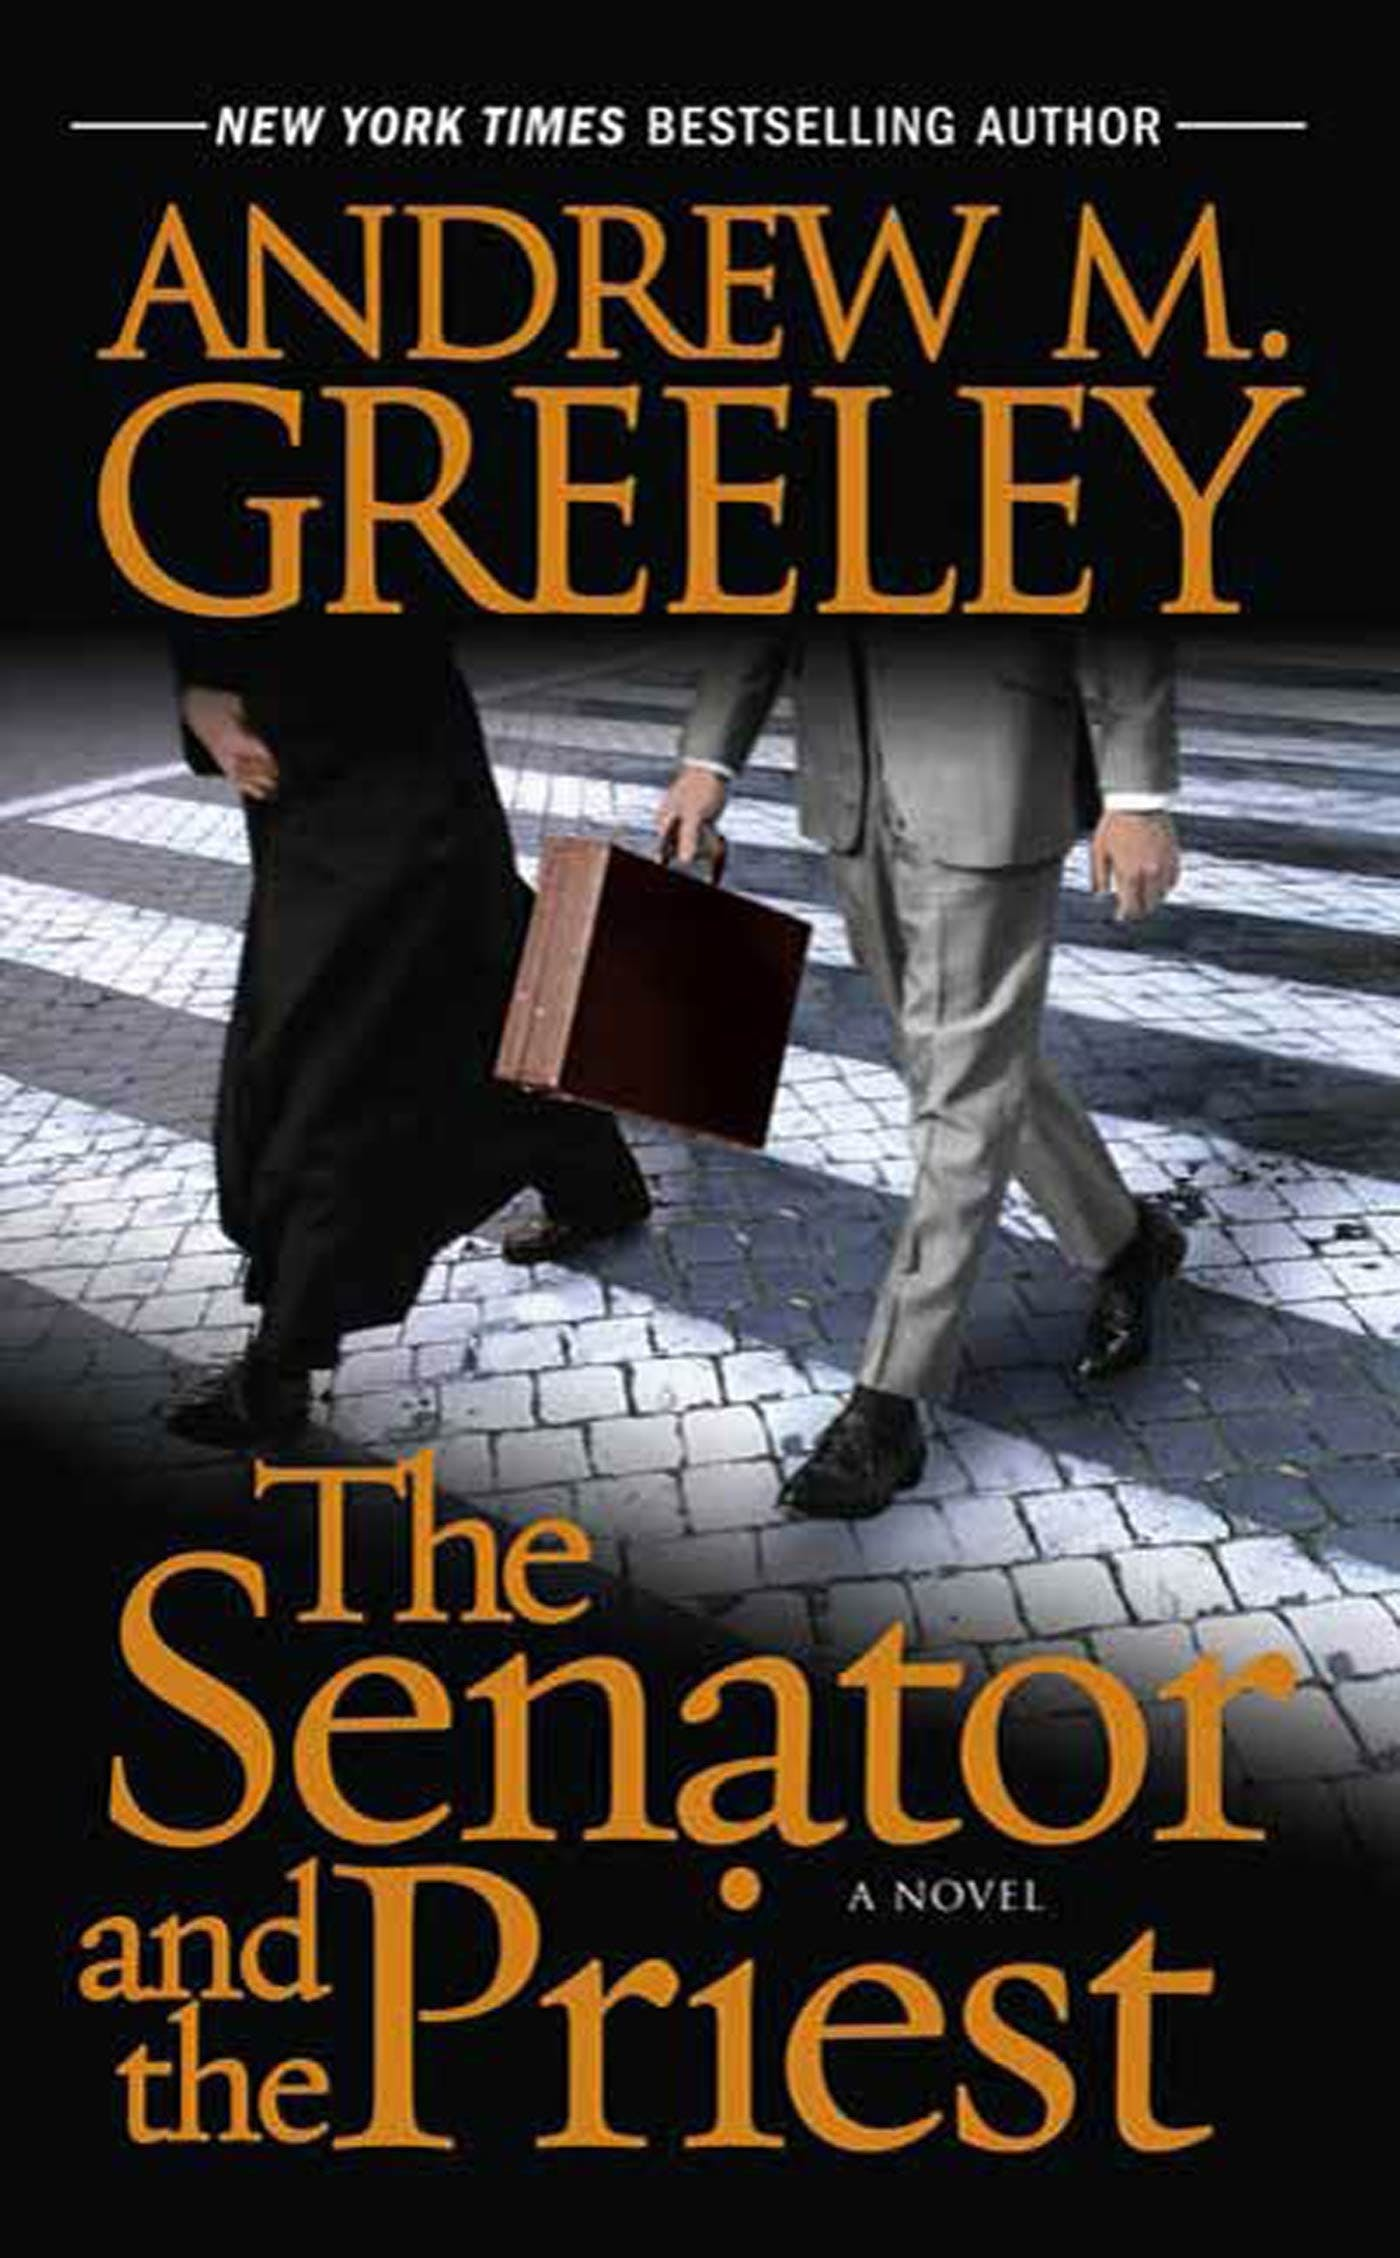 Image of The Senator and the Priest